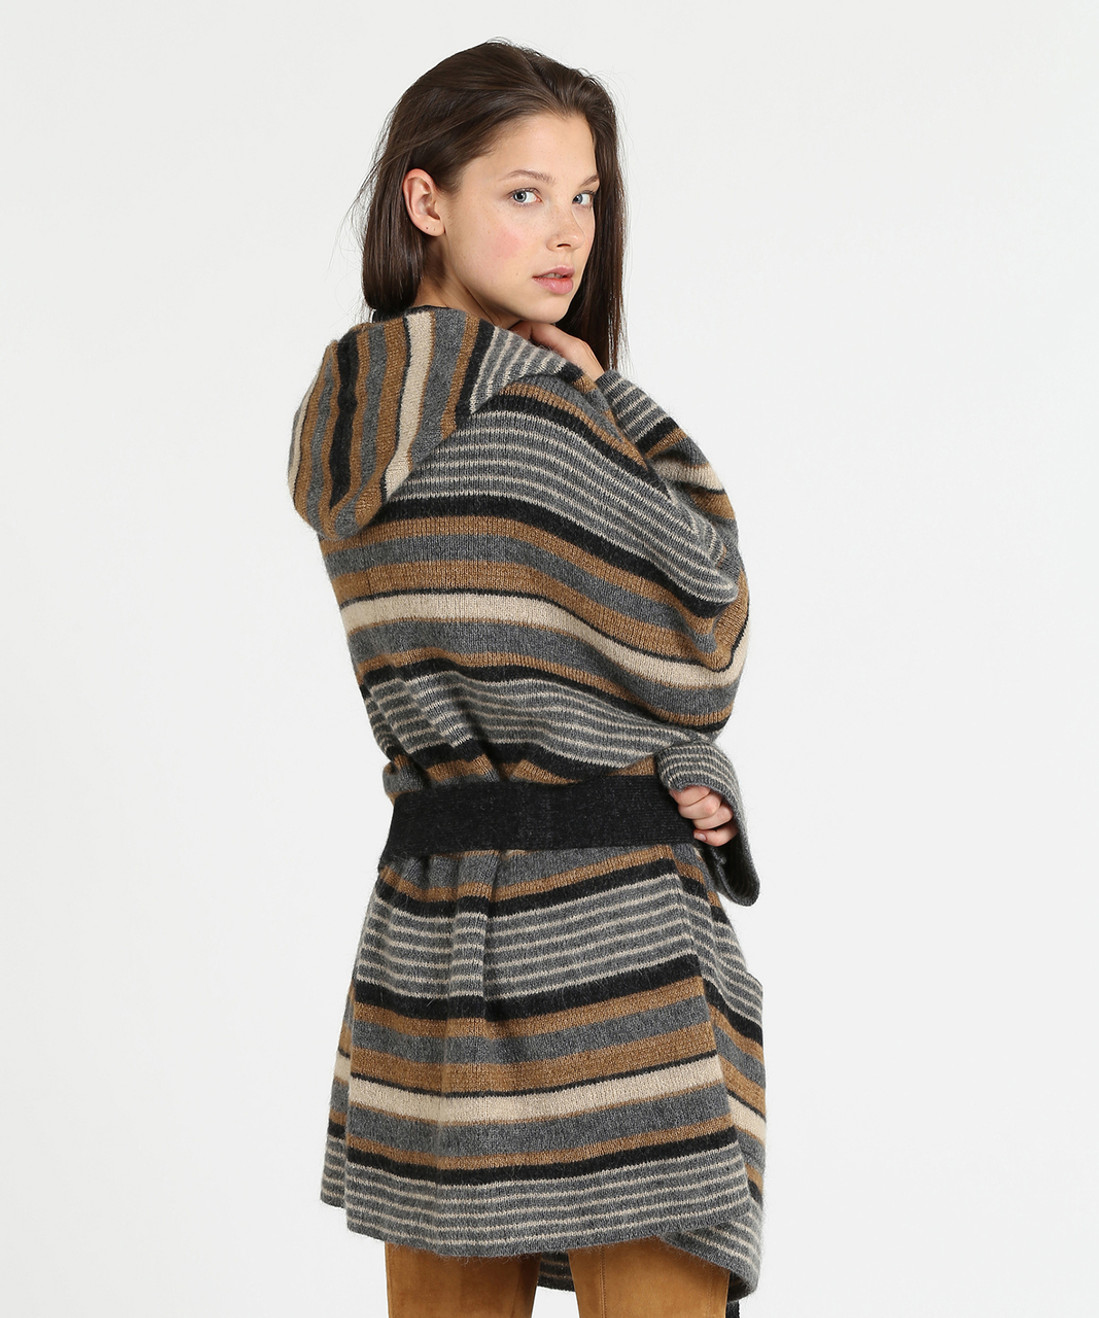 Women's Striped Coat - Iconic Pack